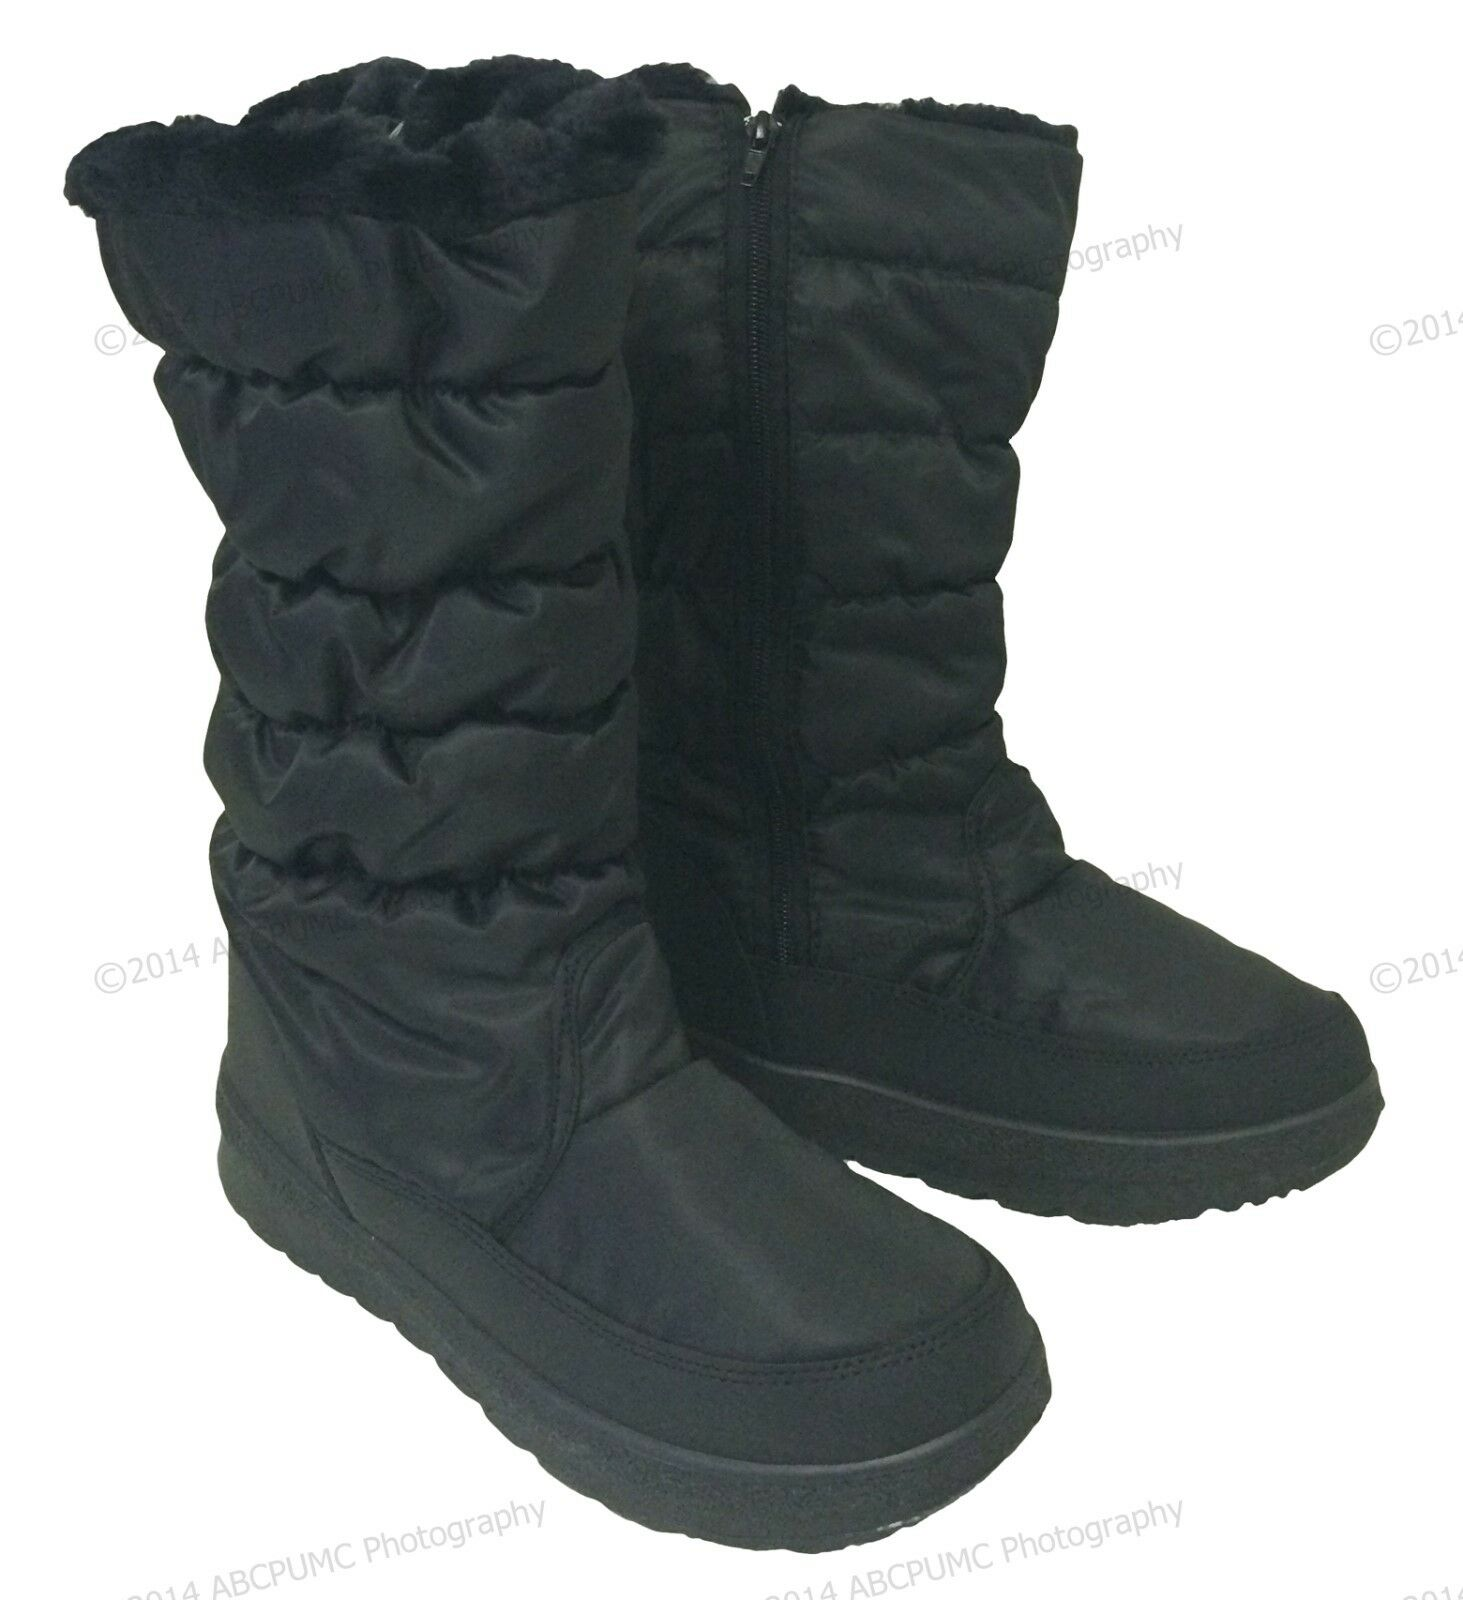 Women's Winter Boots Fur Lined Insulated Waterproof Zipper Ski Snow Shoes Sizes